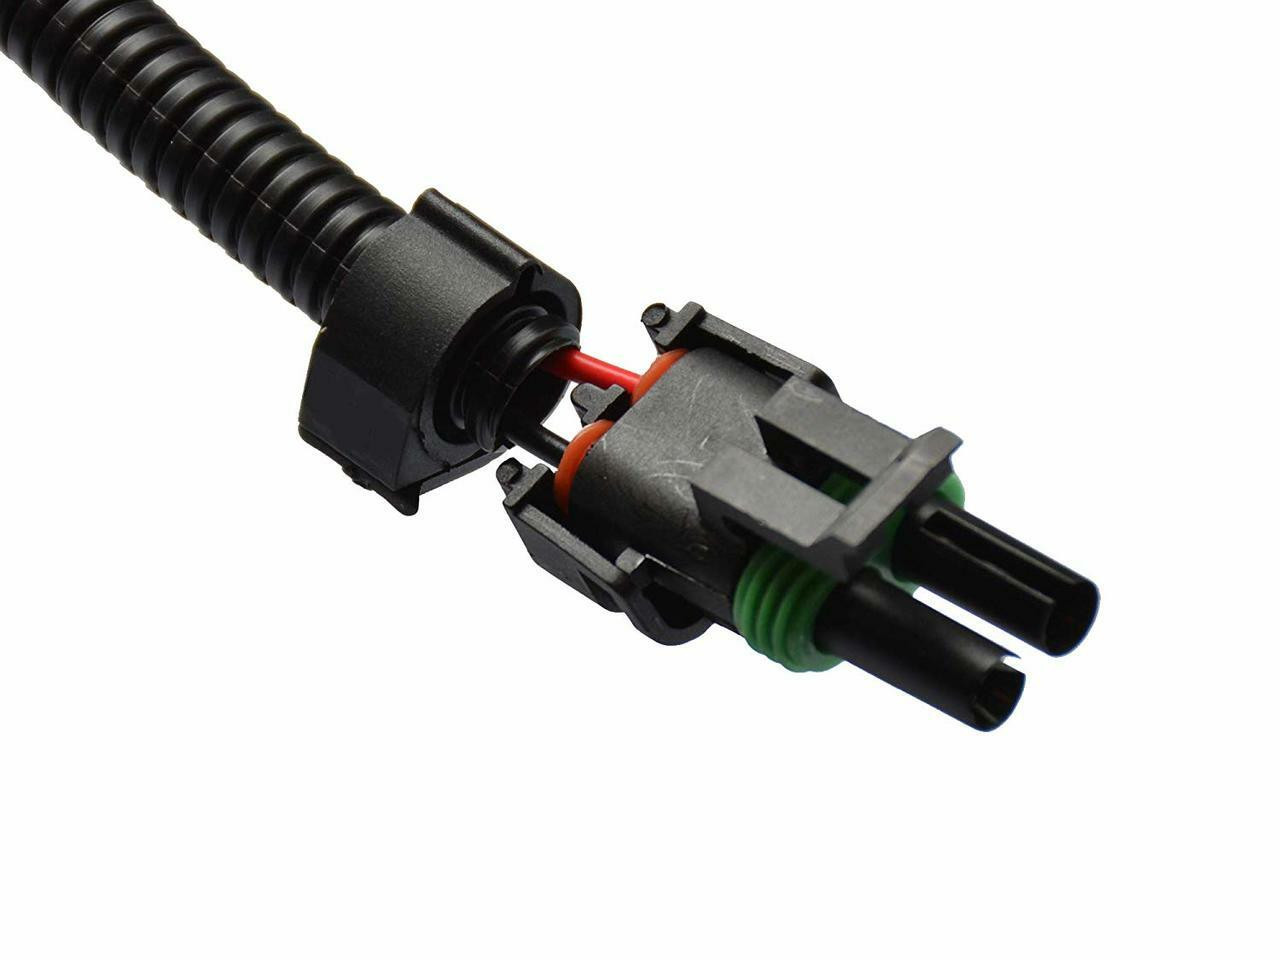 hight resolution of tpi tbi intake air temp sensor wiring harness iat l98 tuned port injection fits 1986